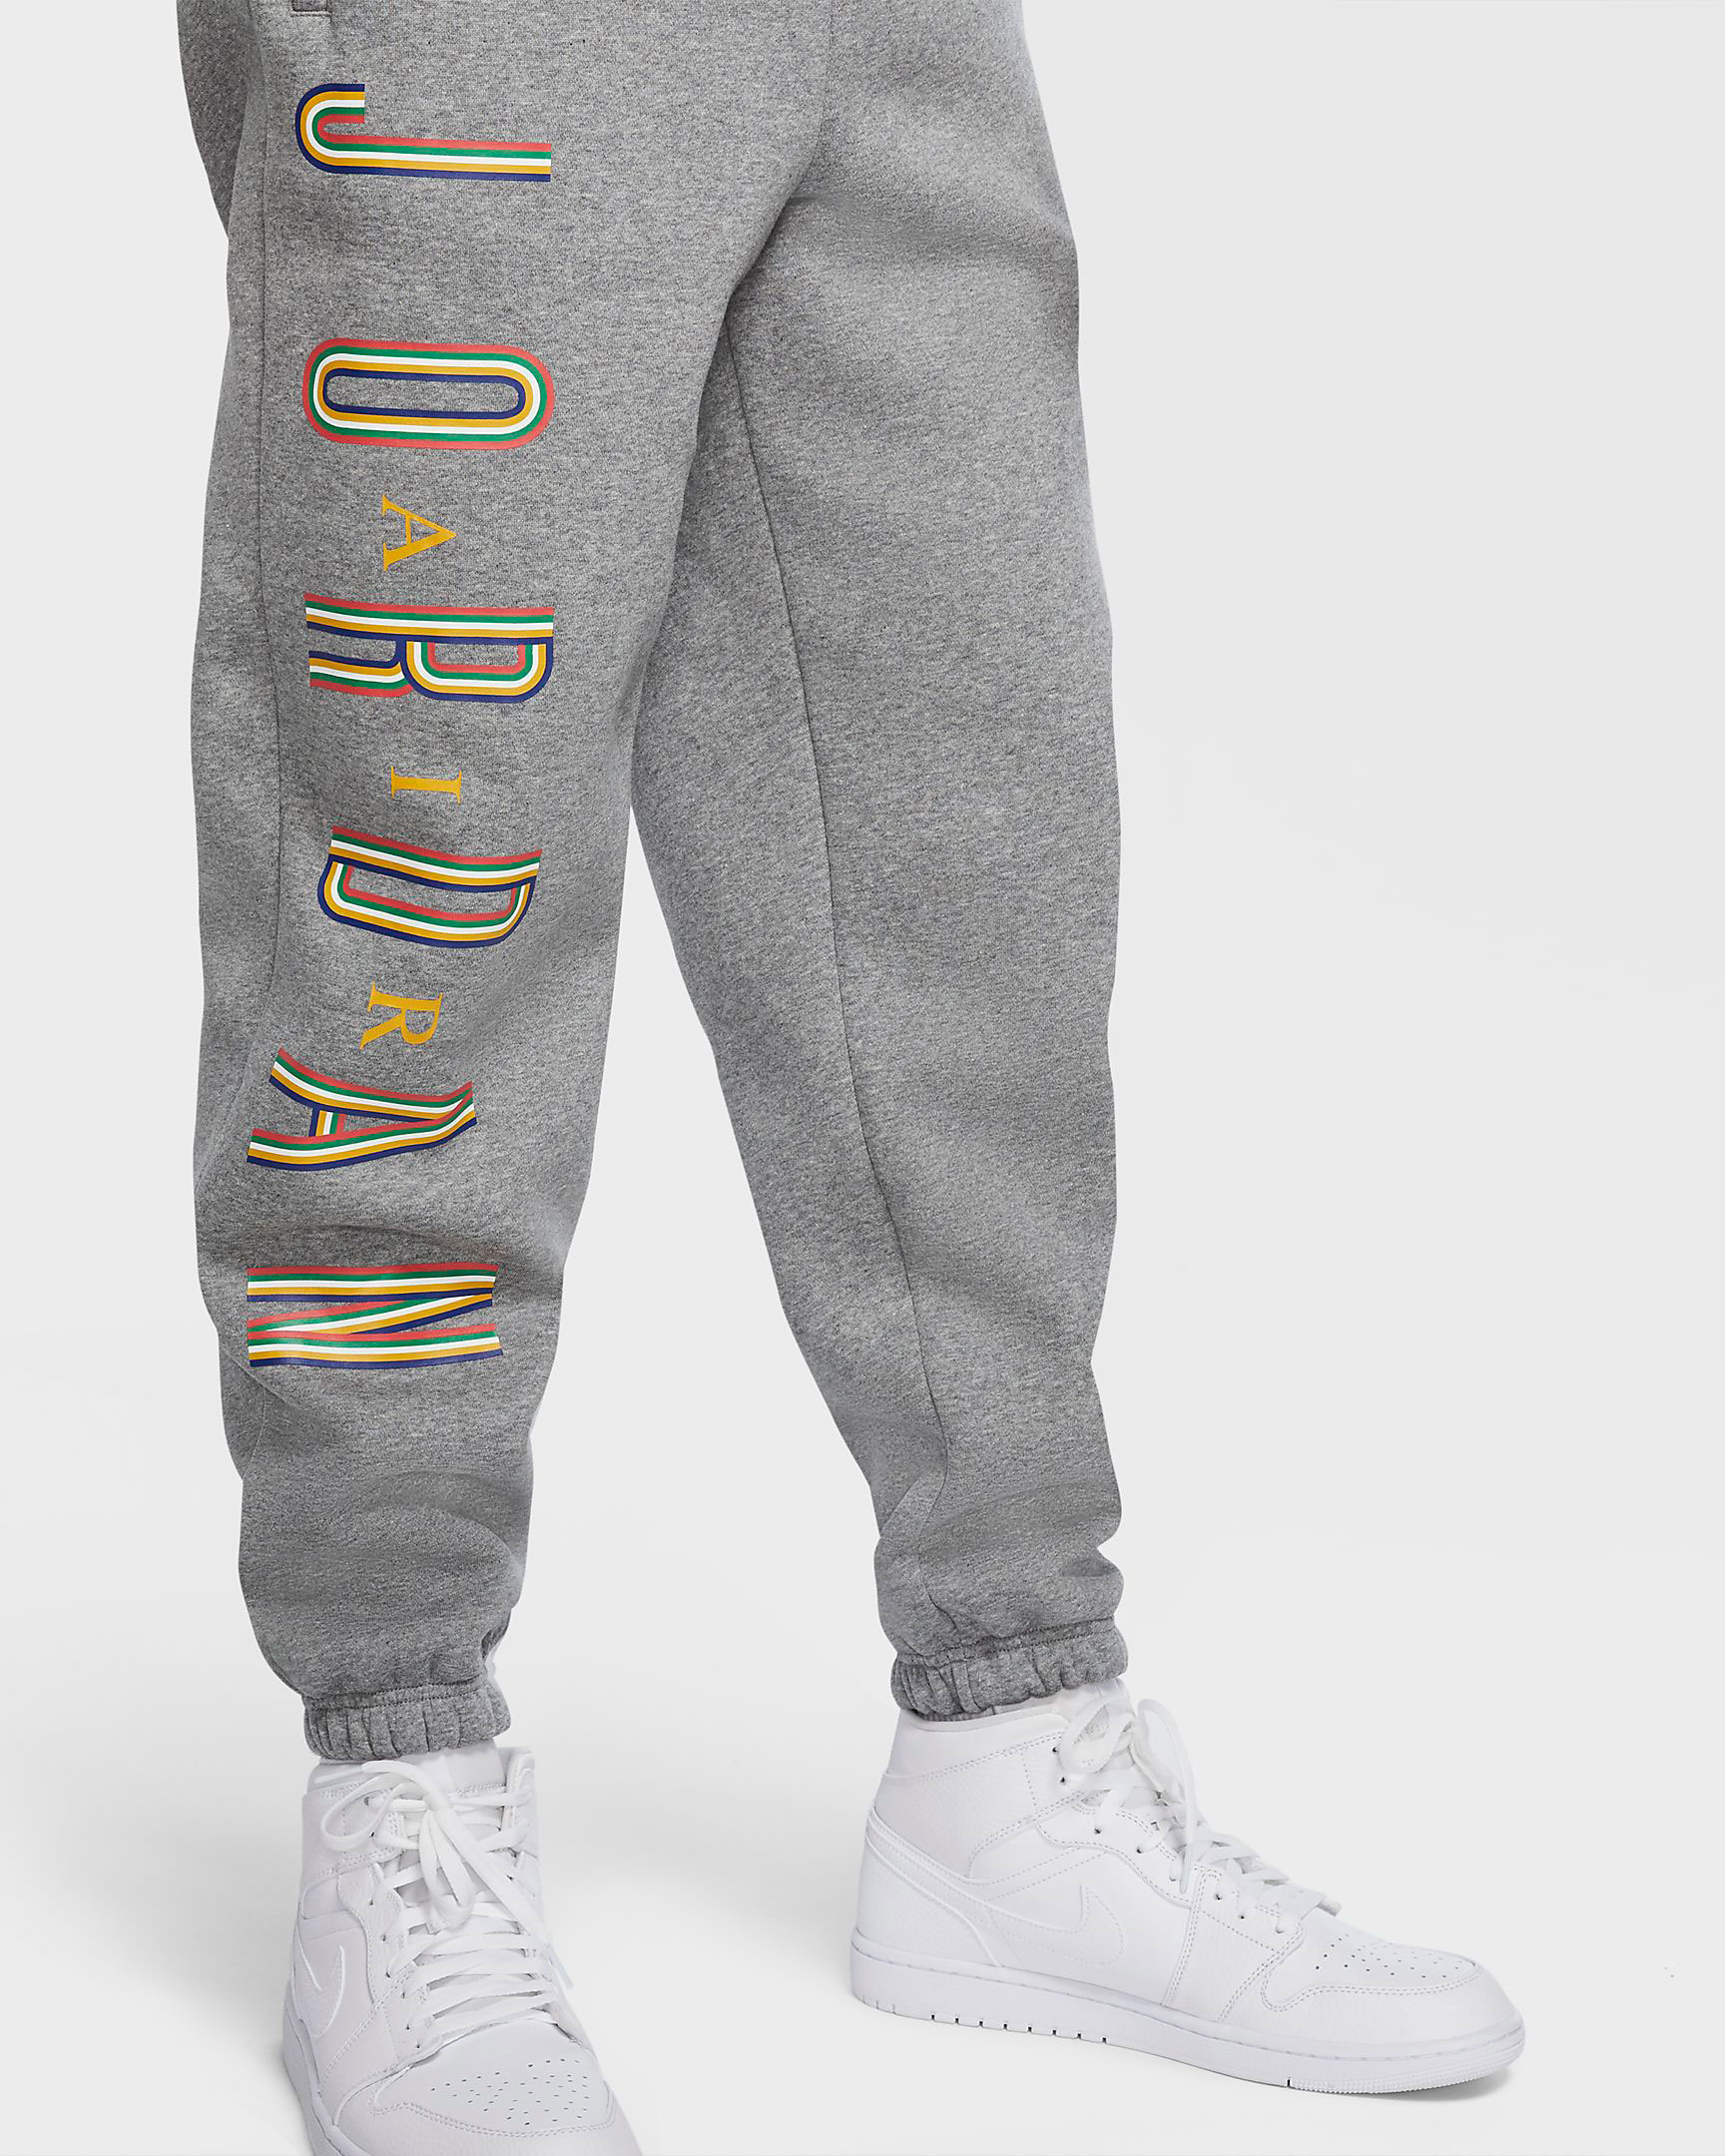 jordan-sport-dna-jogger-pant-grey-multi-color-2